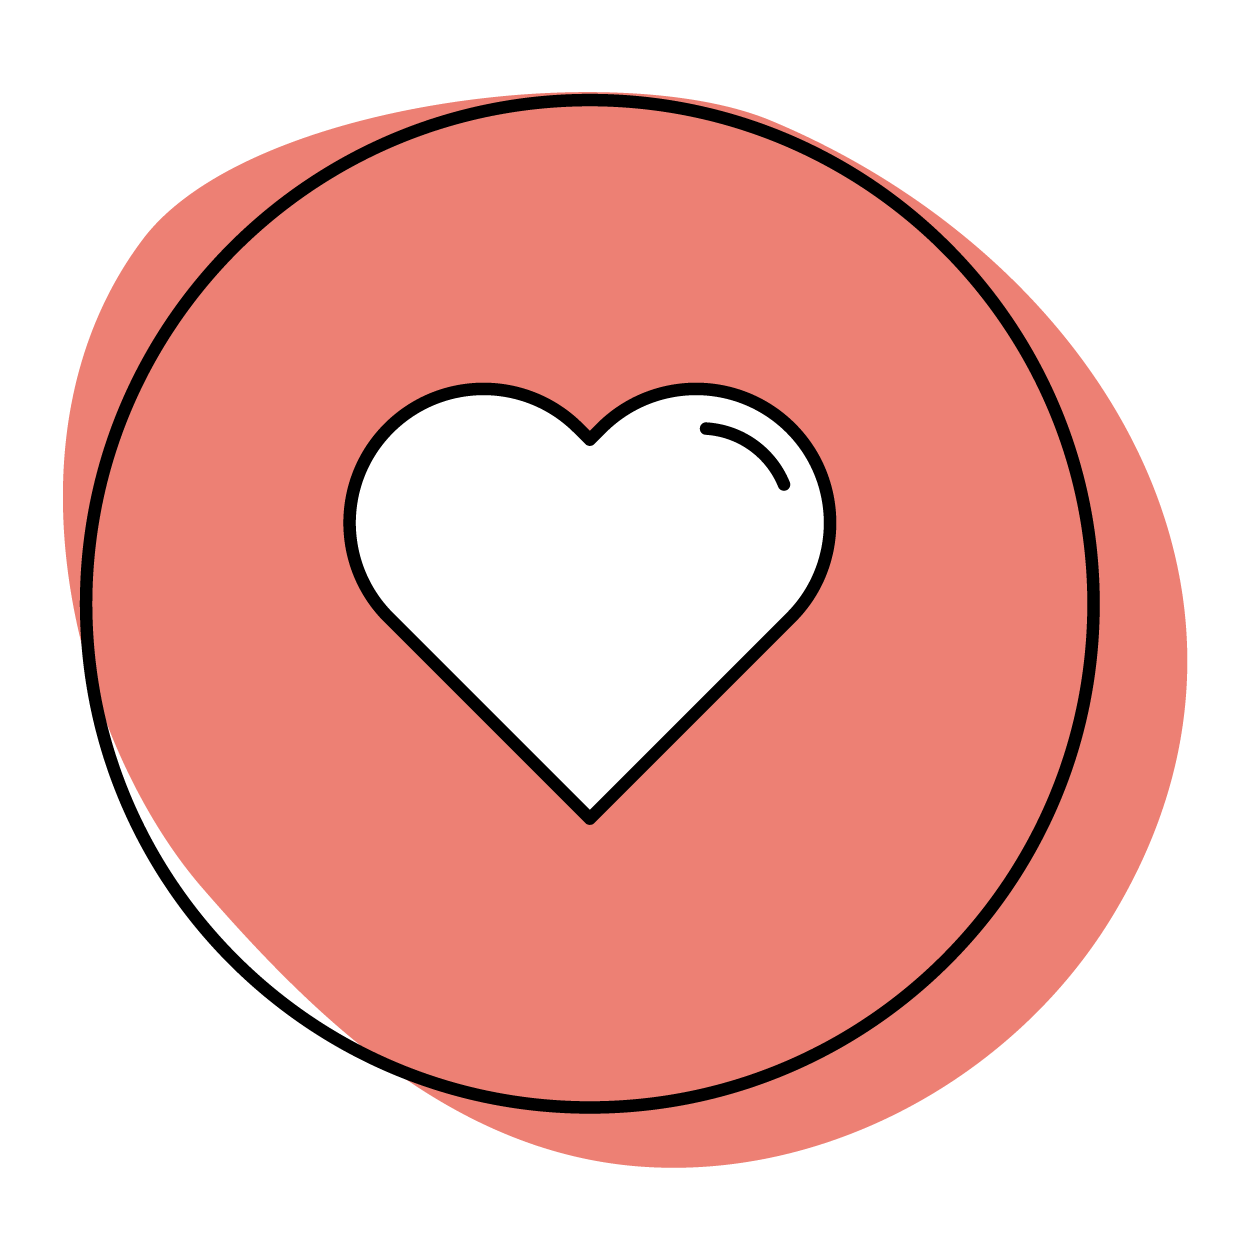 CMO_Icon-Design_About-Us_V1_Workers-with-Heart